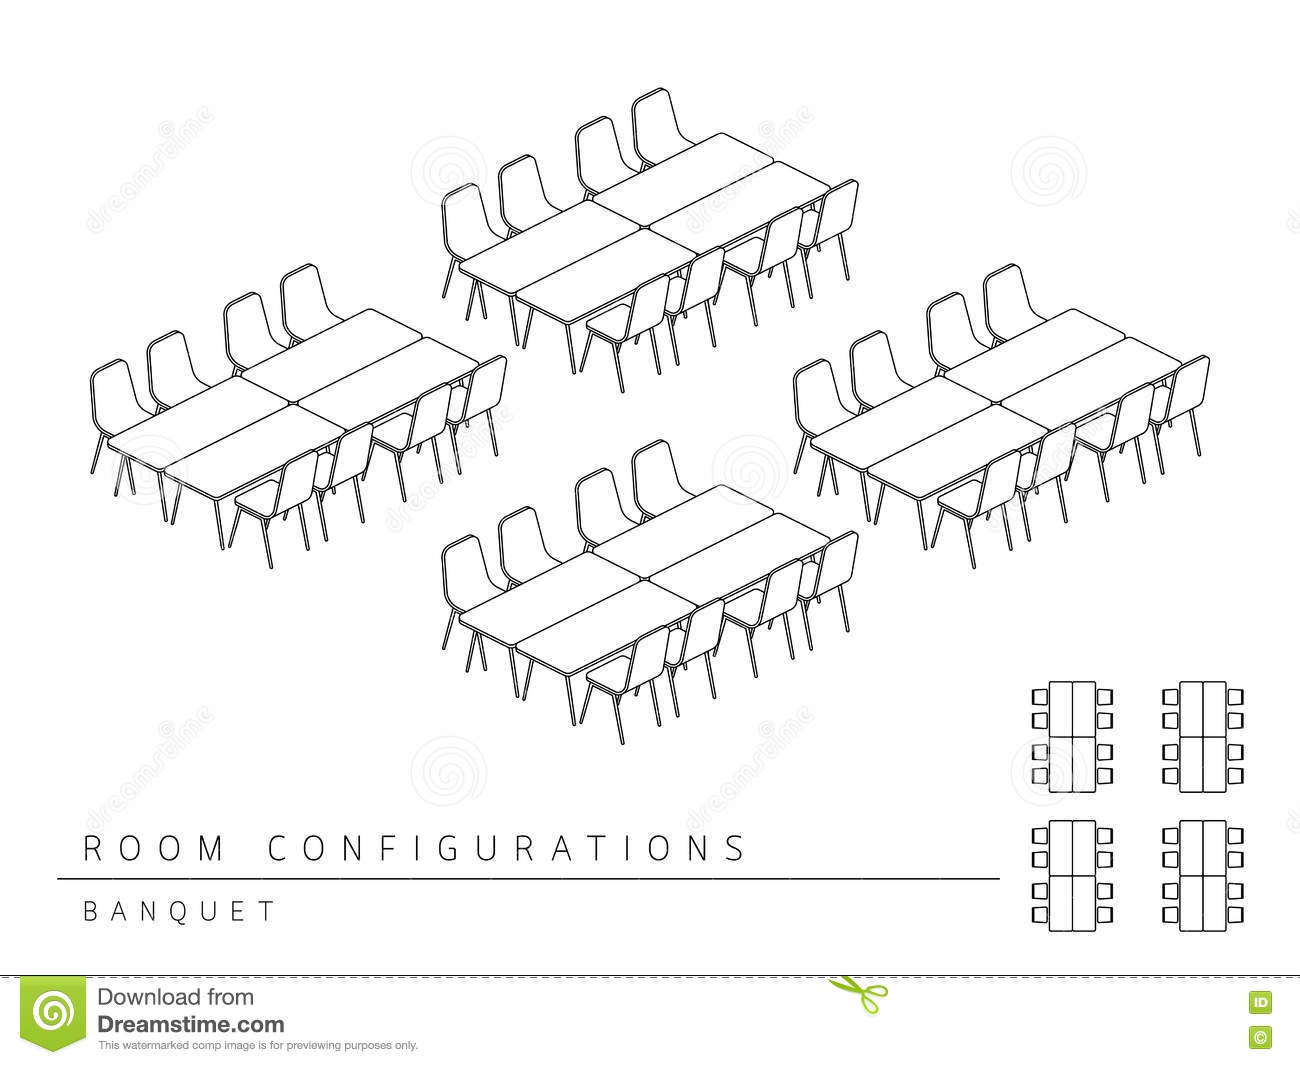 Banquet Style Meeting Room Set Up Diagrams likewise 33284484716938150 as well Types Of Conference Room Setups erQXPvEatJ2 GSG78xZYSPRMG 7CeMcEoBEfEnfDVZd4c moreover Training Room Set Up Diagrams as well Stock Illustration Meeting Room Setup Layout Configuration Banquet Style Perspective D Top View Illustration Outline Black White Color Image71485542. on banquet style meeting room set up diagrams